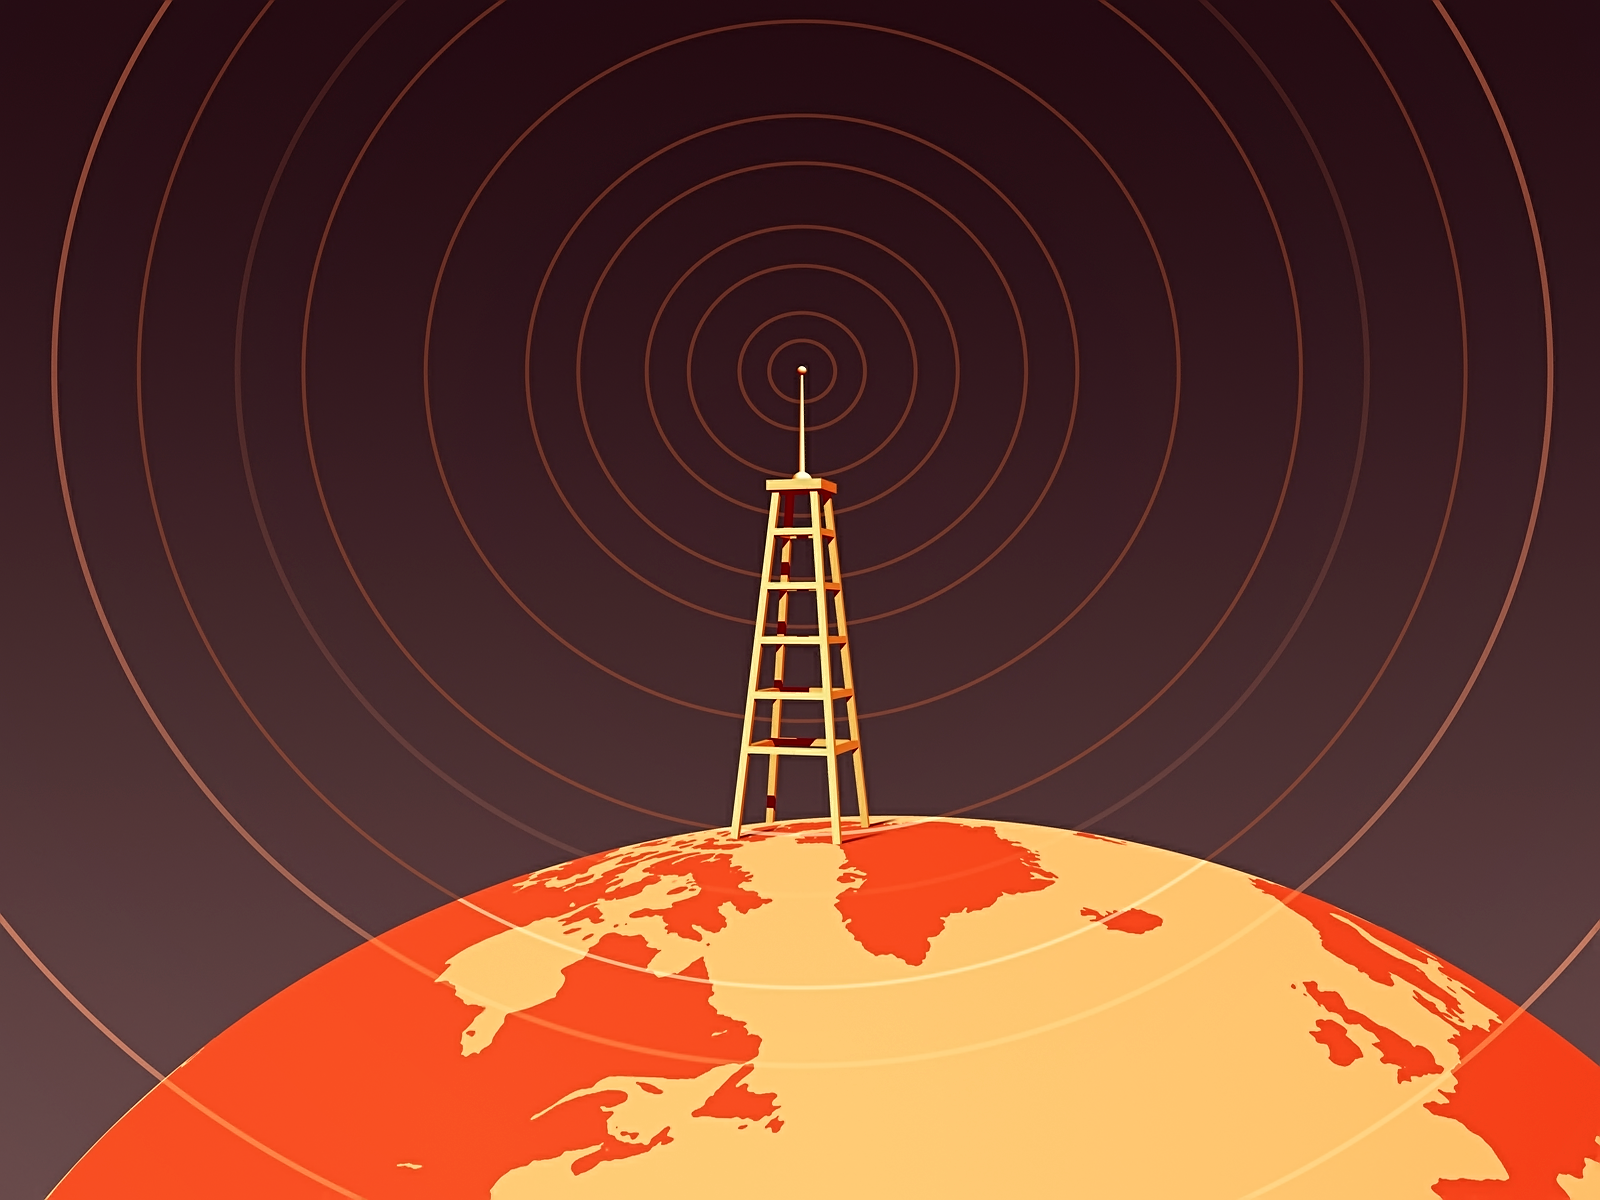 Brand advocacy paid social amplify message old-timey radio tower